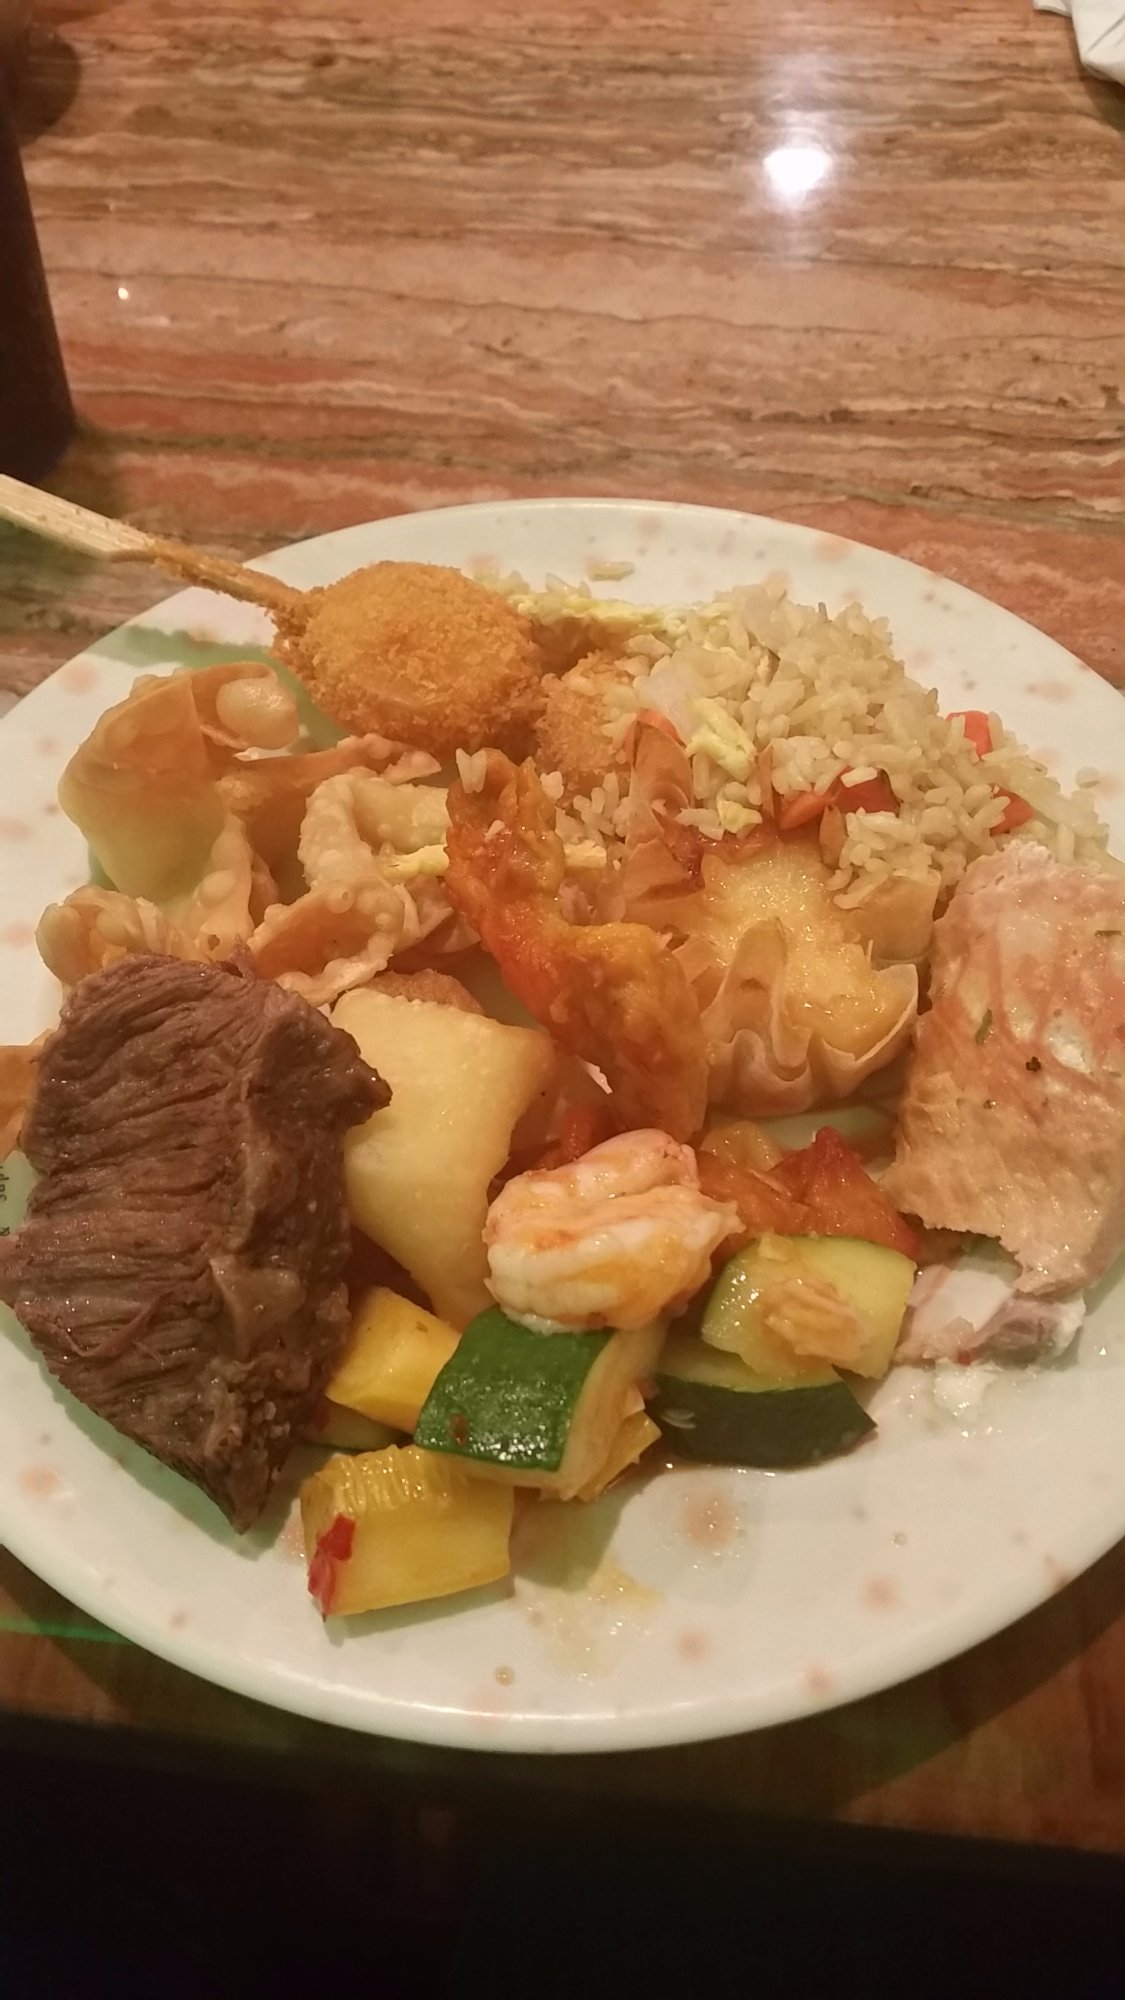 Just some of the buffet food.